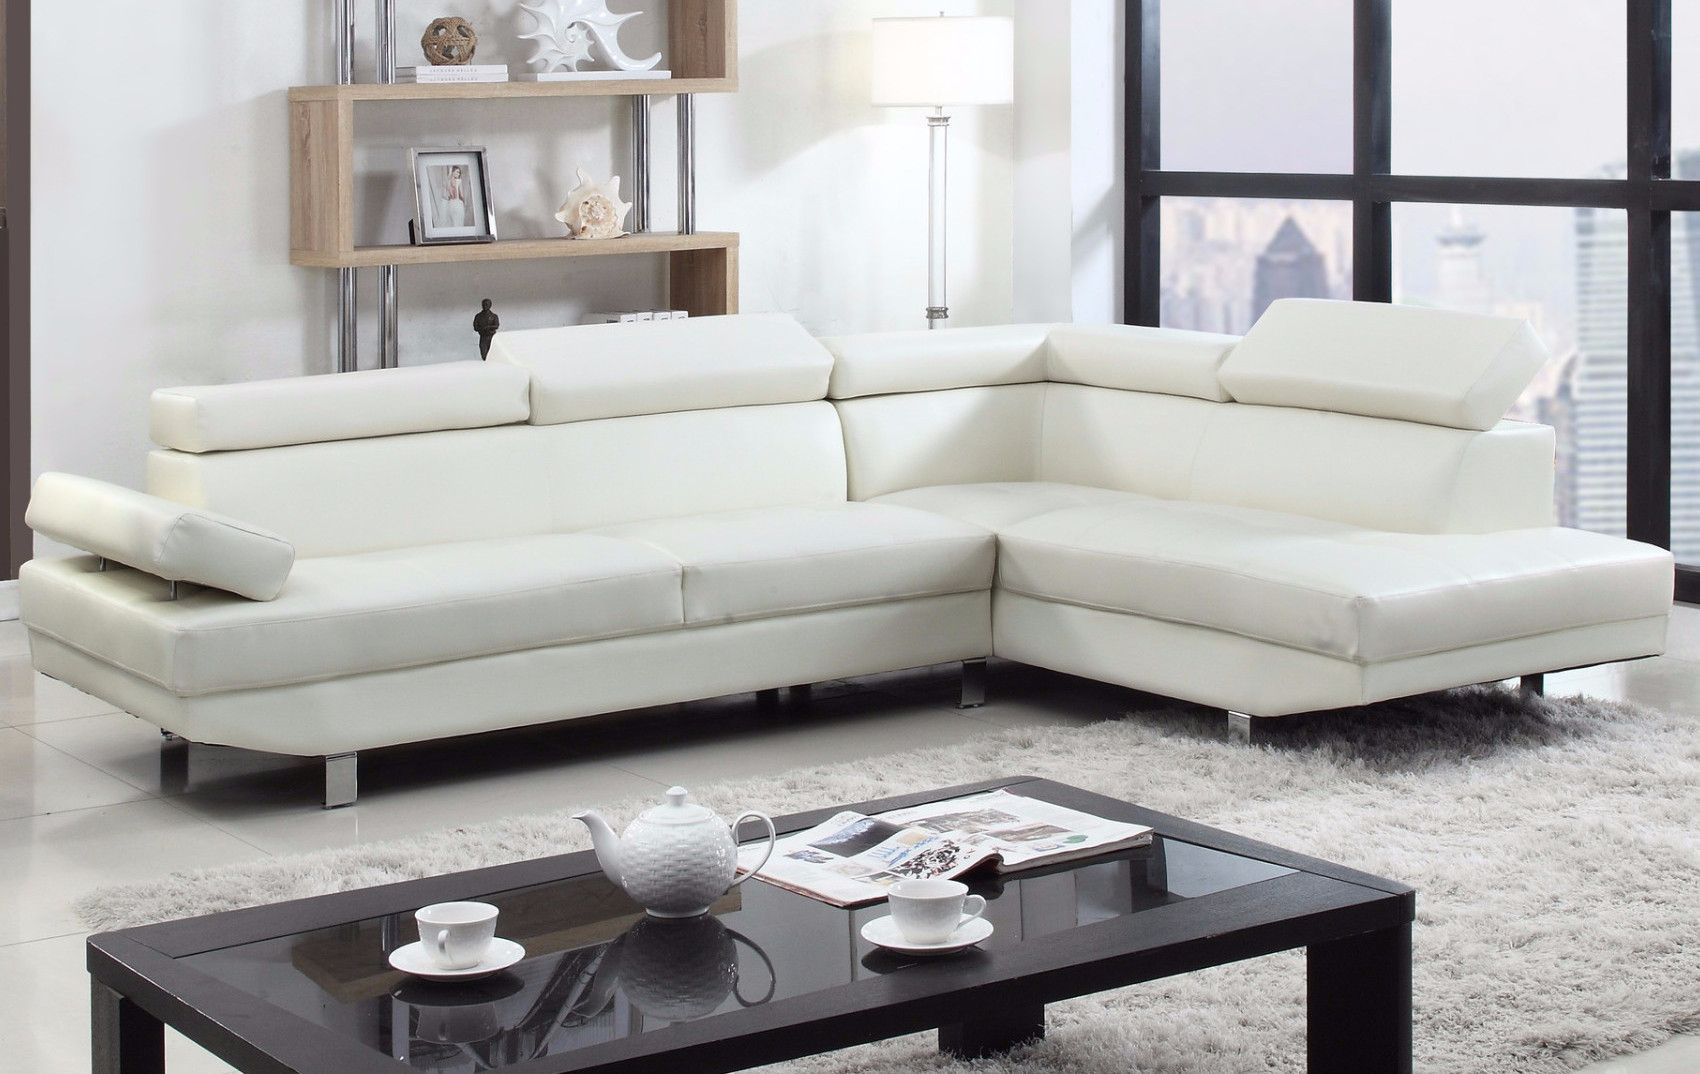 Albert Modern Bonded Leather Sectional with Right Chaise | sofa ...